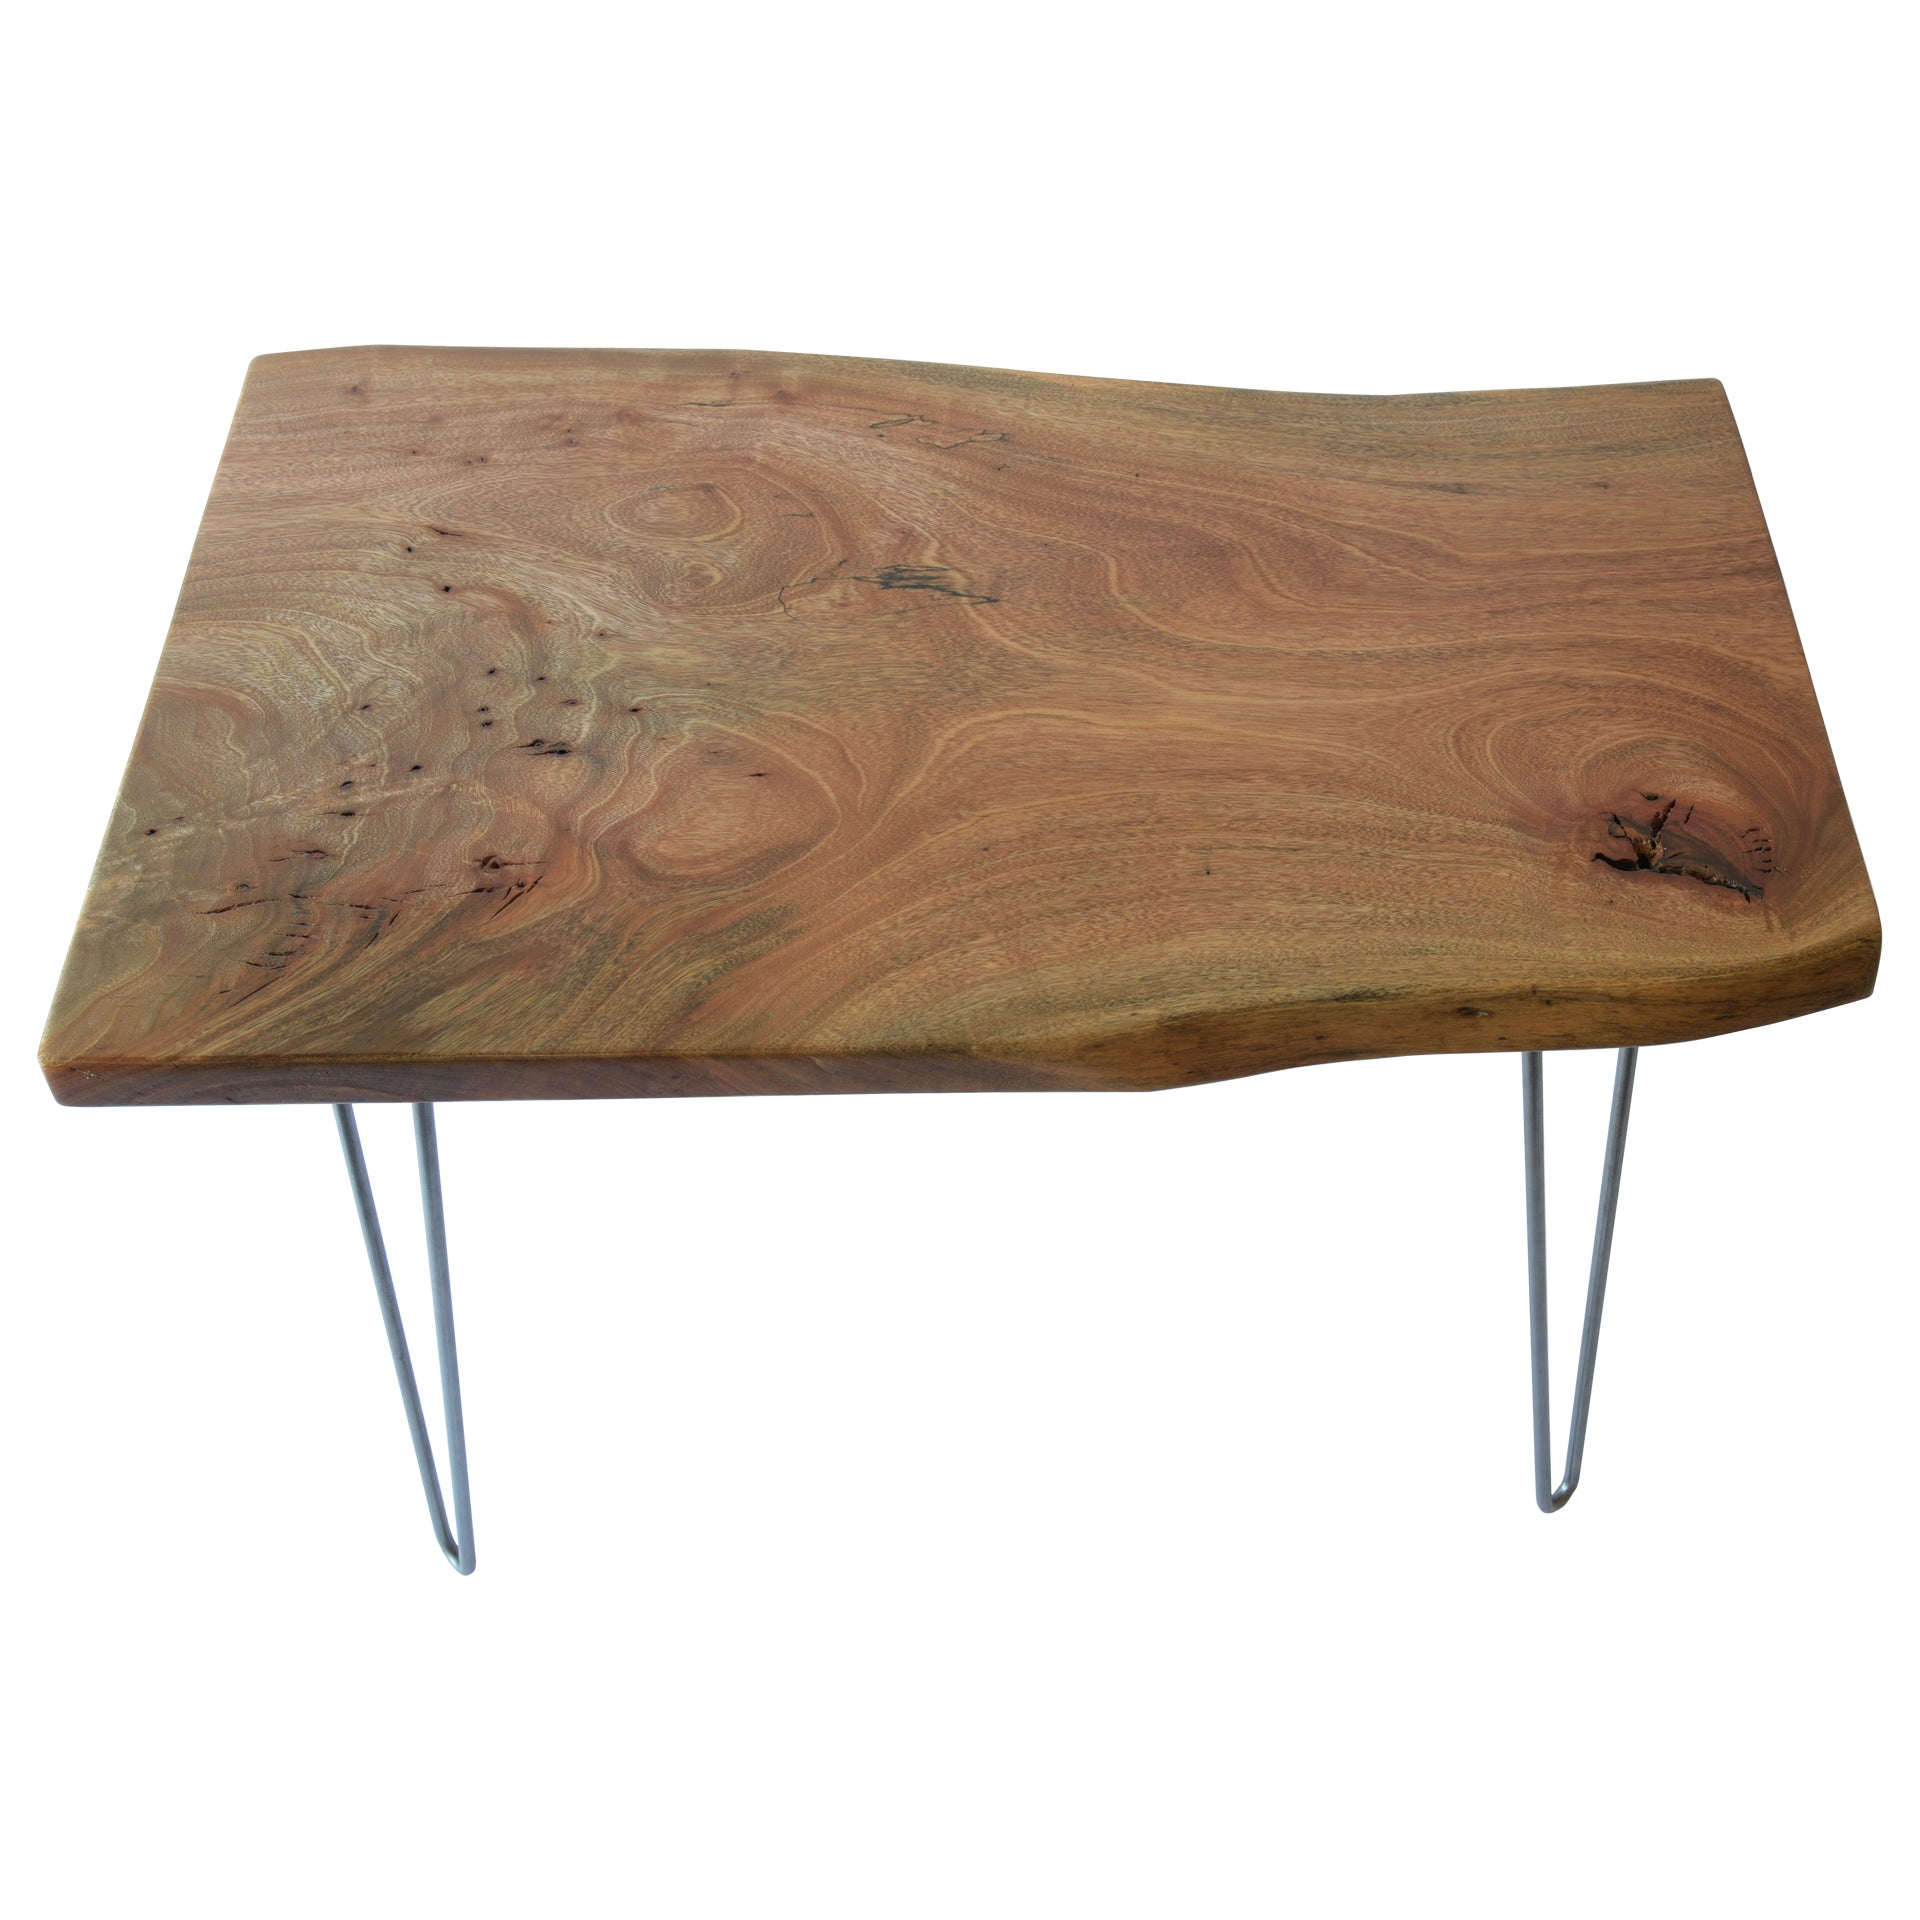 Light Live Edge Slab Handmade End Table